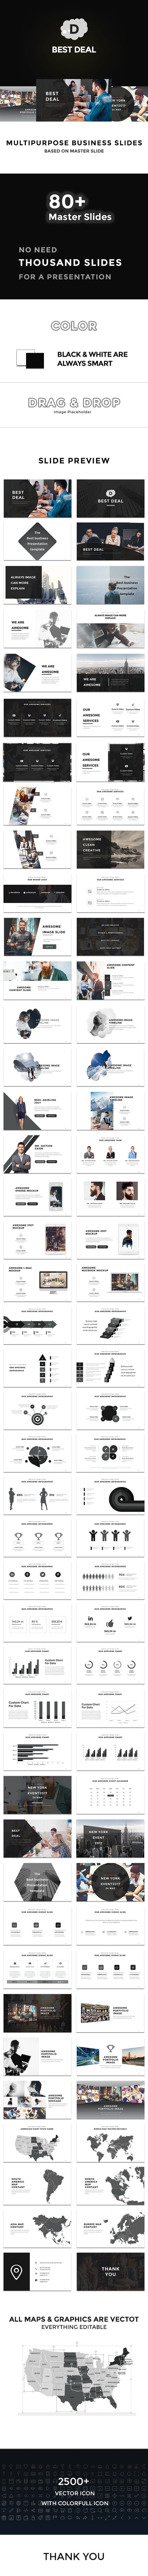 Powerpoint Presentation Template - Business PowerPoint Templates